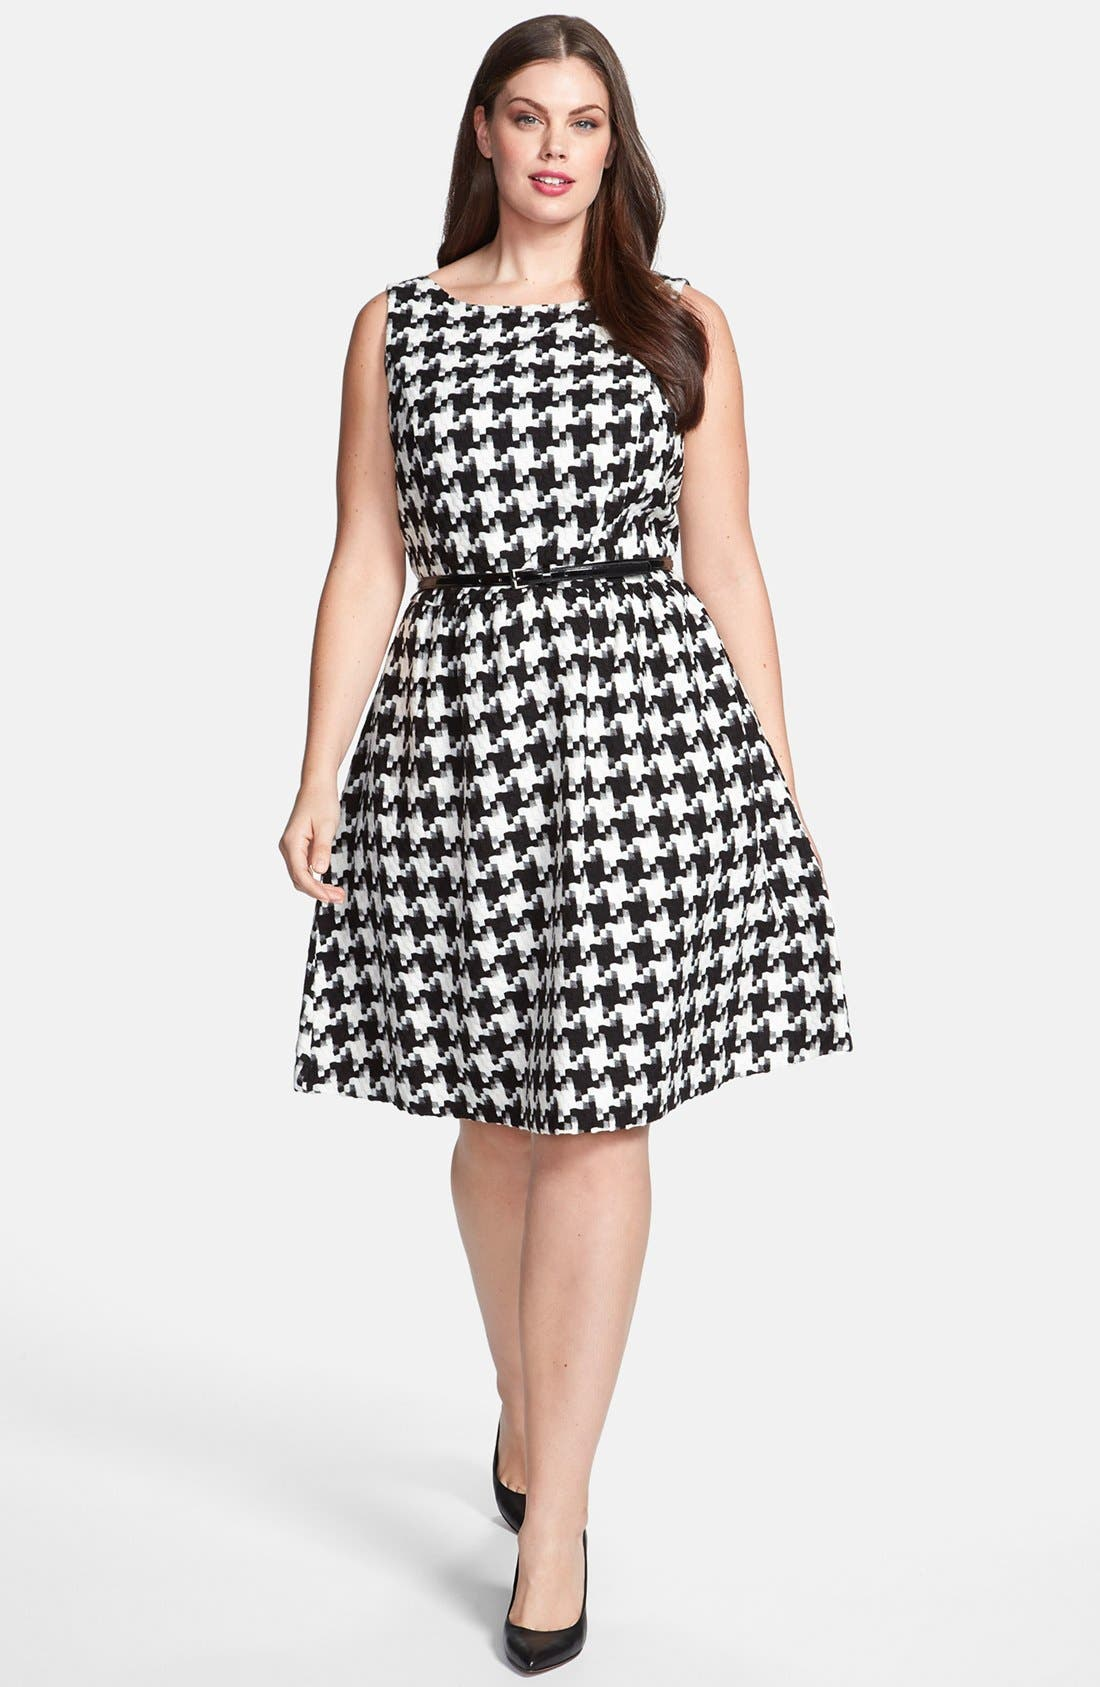 Alternate Image 1 Selected - Jessica Simpson Houndstooth Dress (Plus Size)